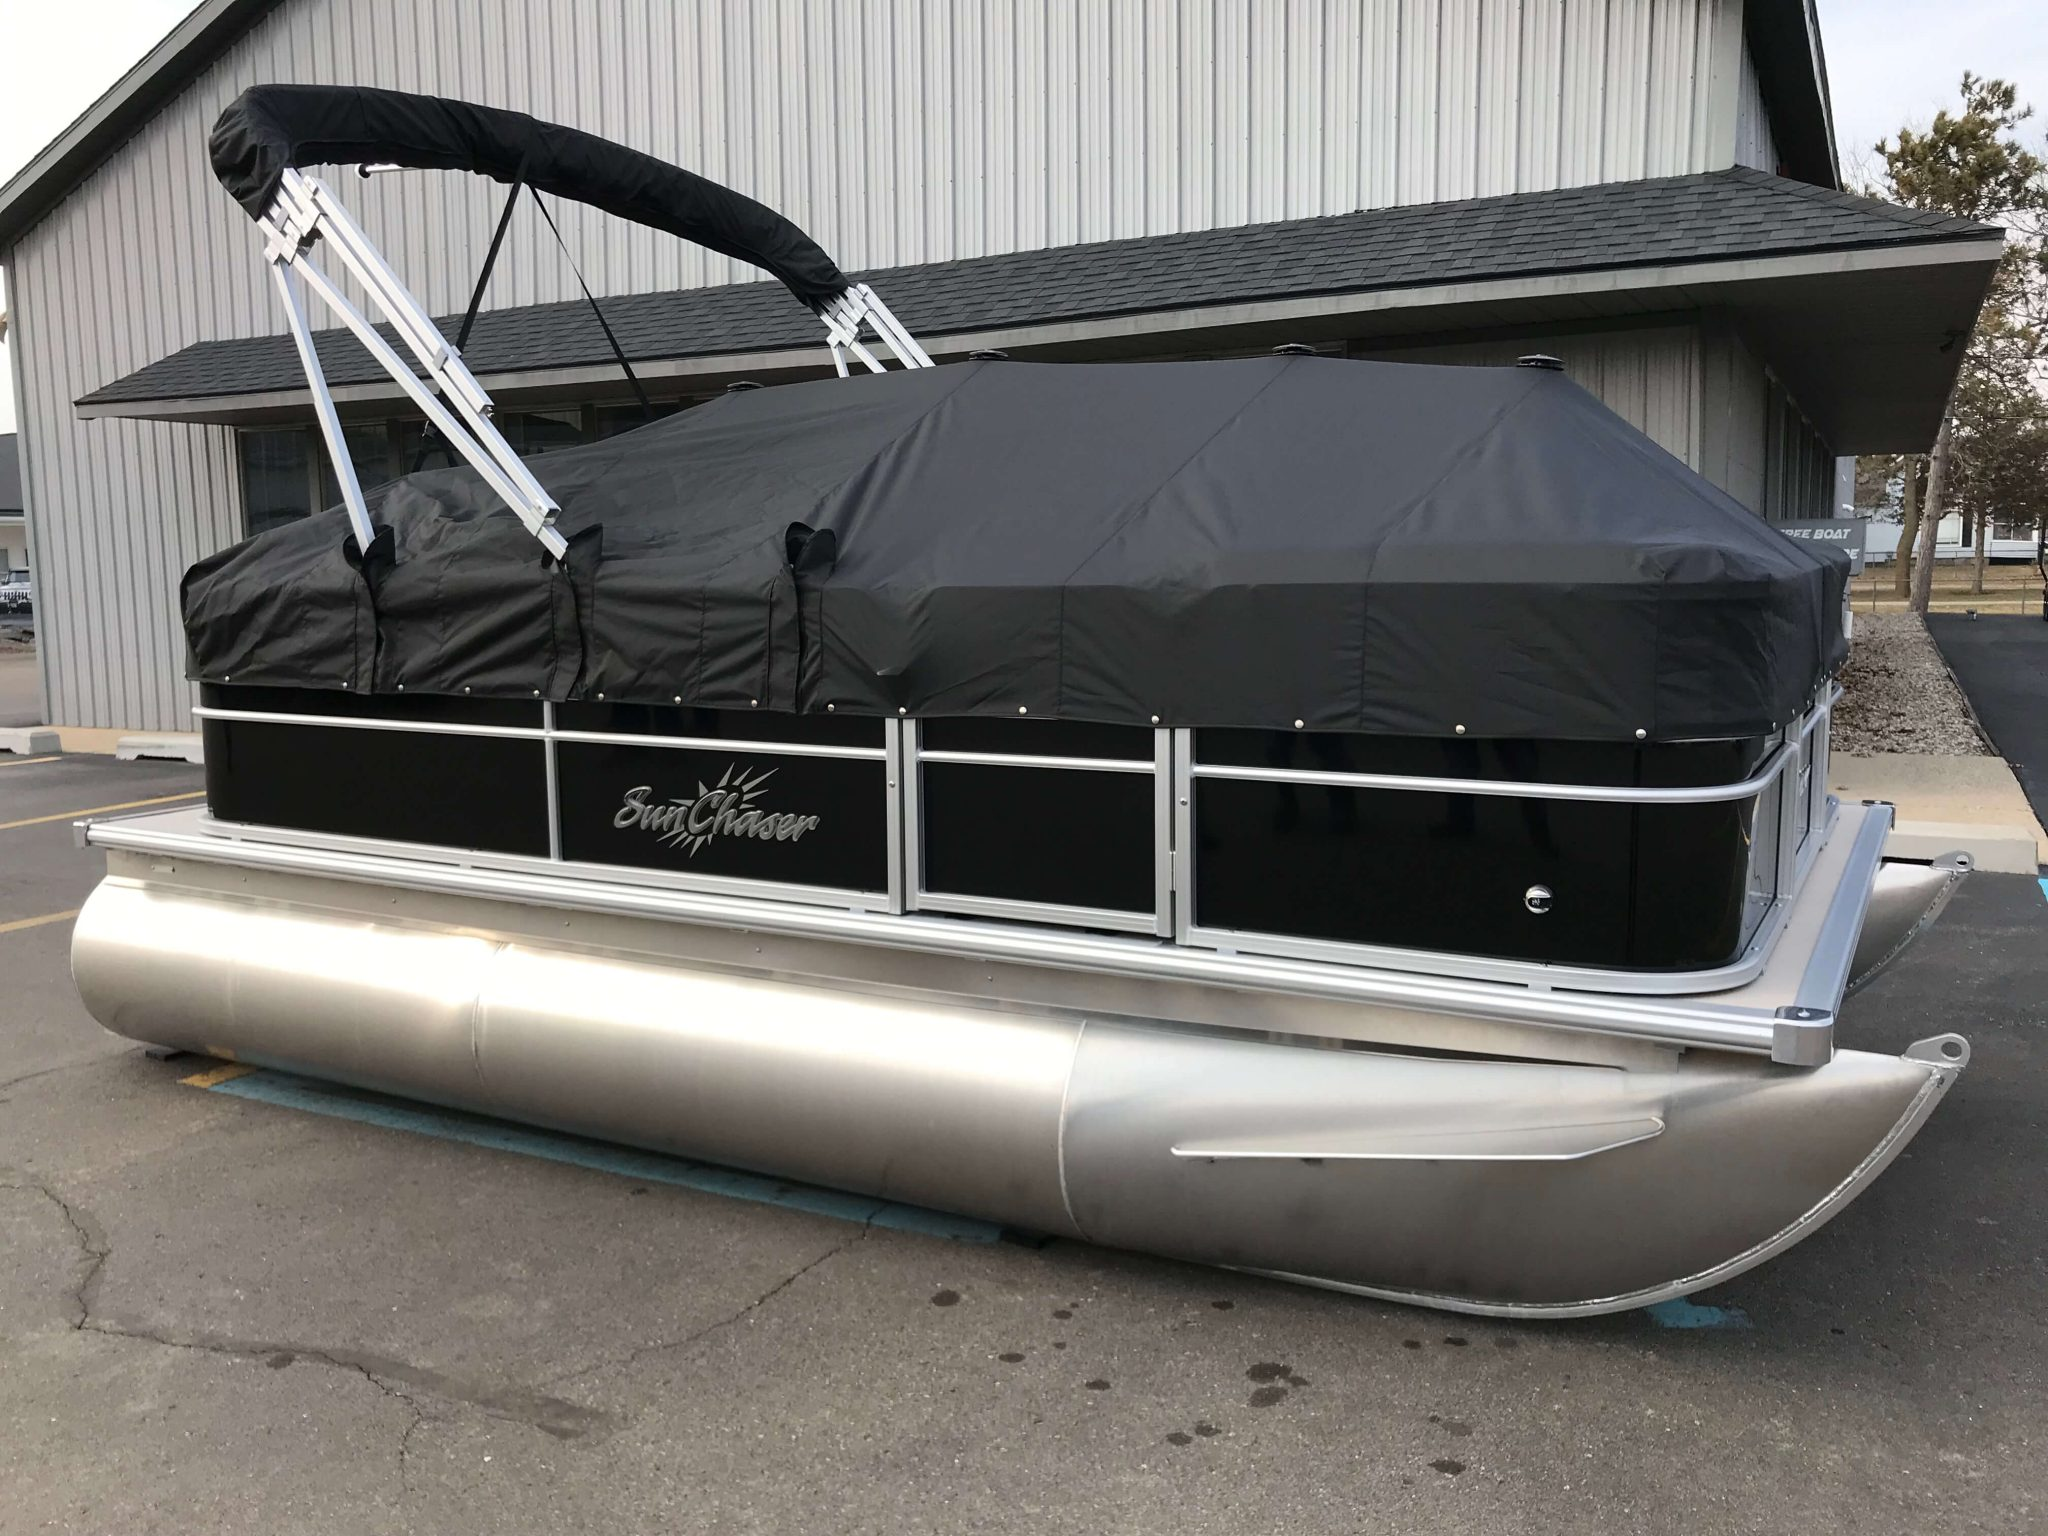 2019 SunChaser Oasis 816 Cruise Black Cover